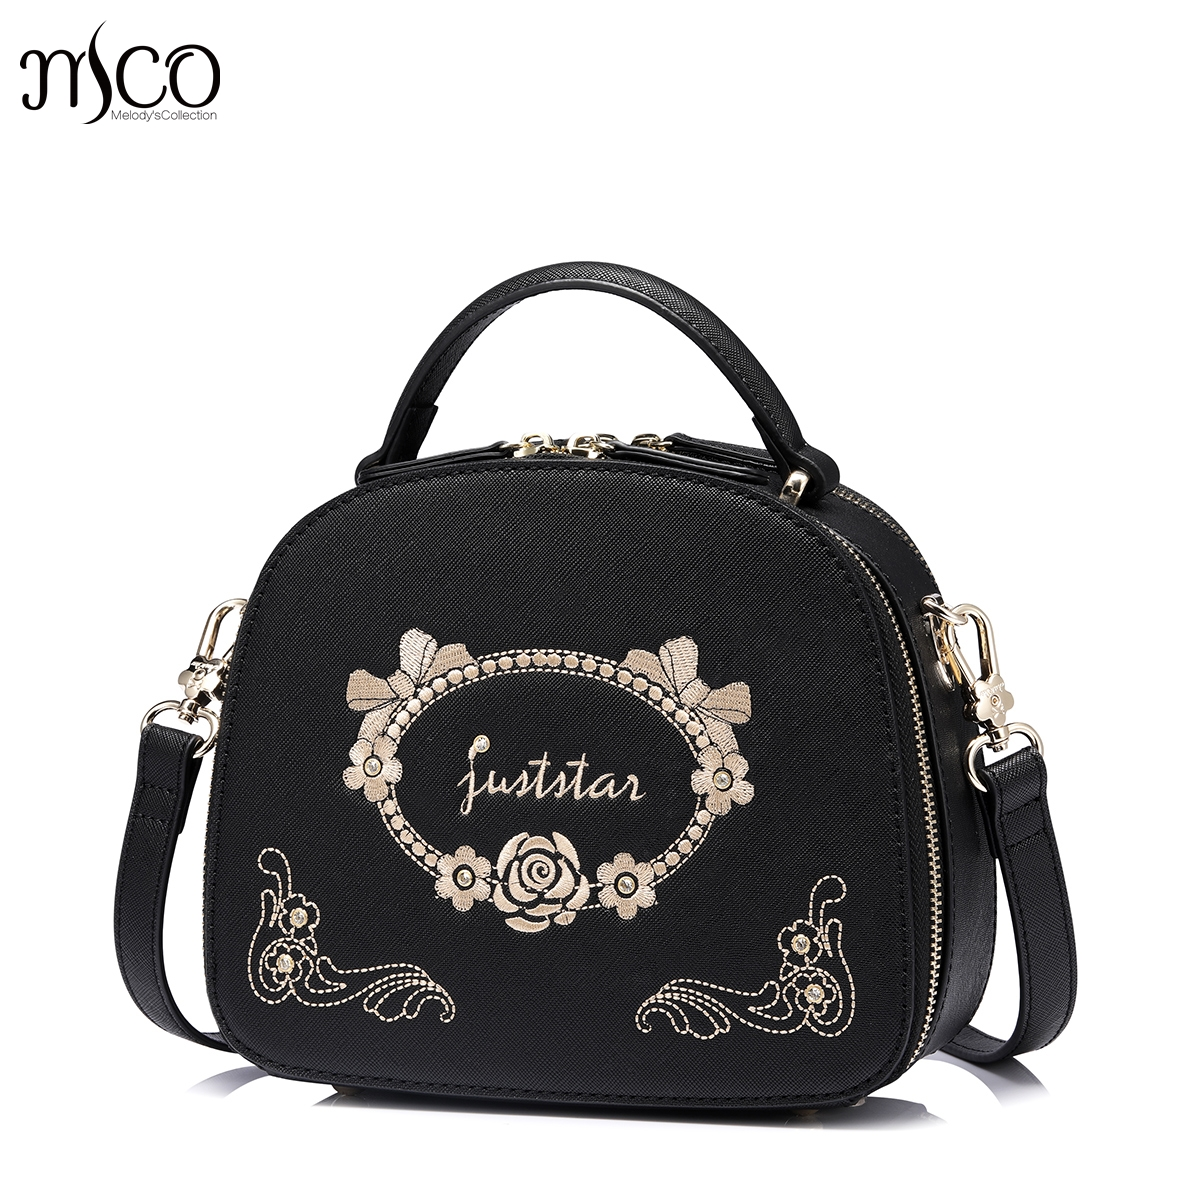 Women Luxuriant Embroidery Messenger Bag Flower Handbag Ladies Small  Crossbody Bags Famous Brands Designers Shoulder Bags 0a0885aeb474f